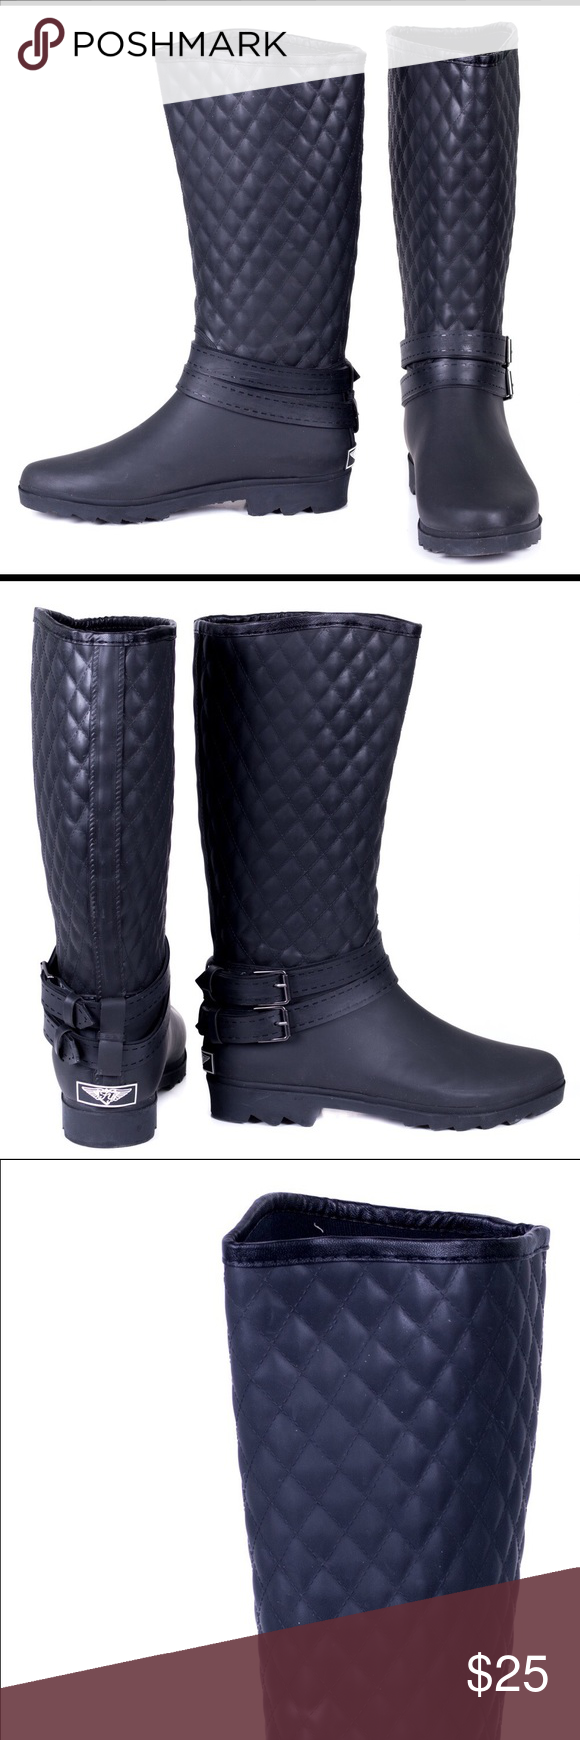 Creative Wide Calf Boots For Women That Look Sexy Chic And Trendy  InfoBarrel